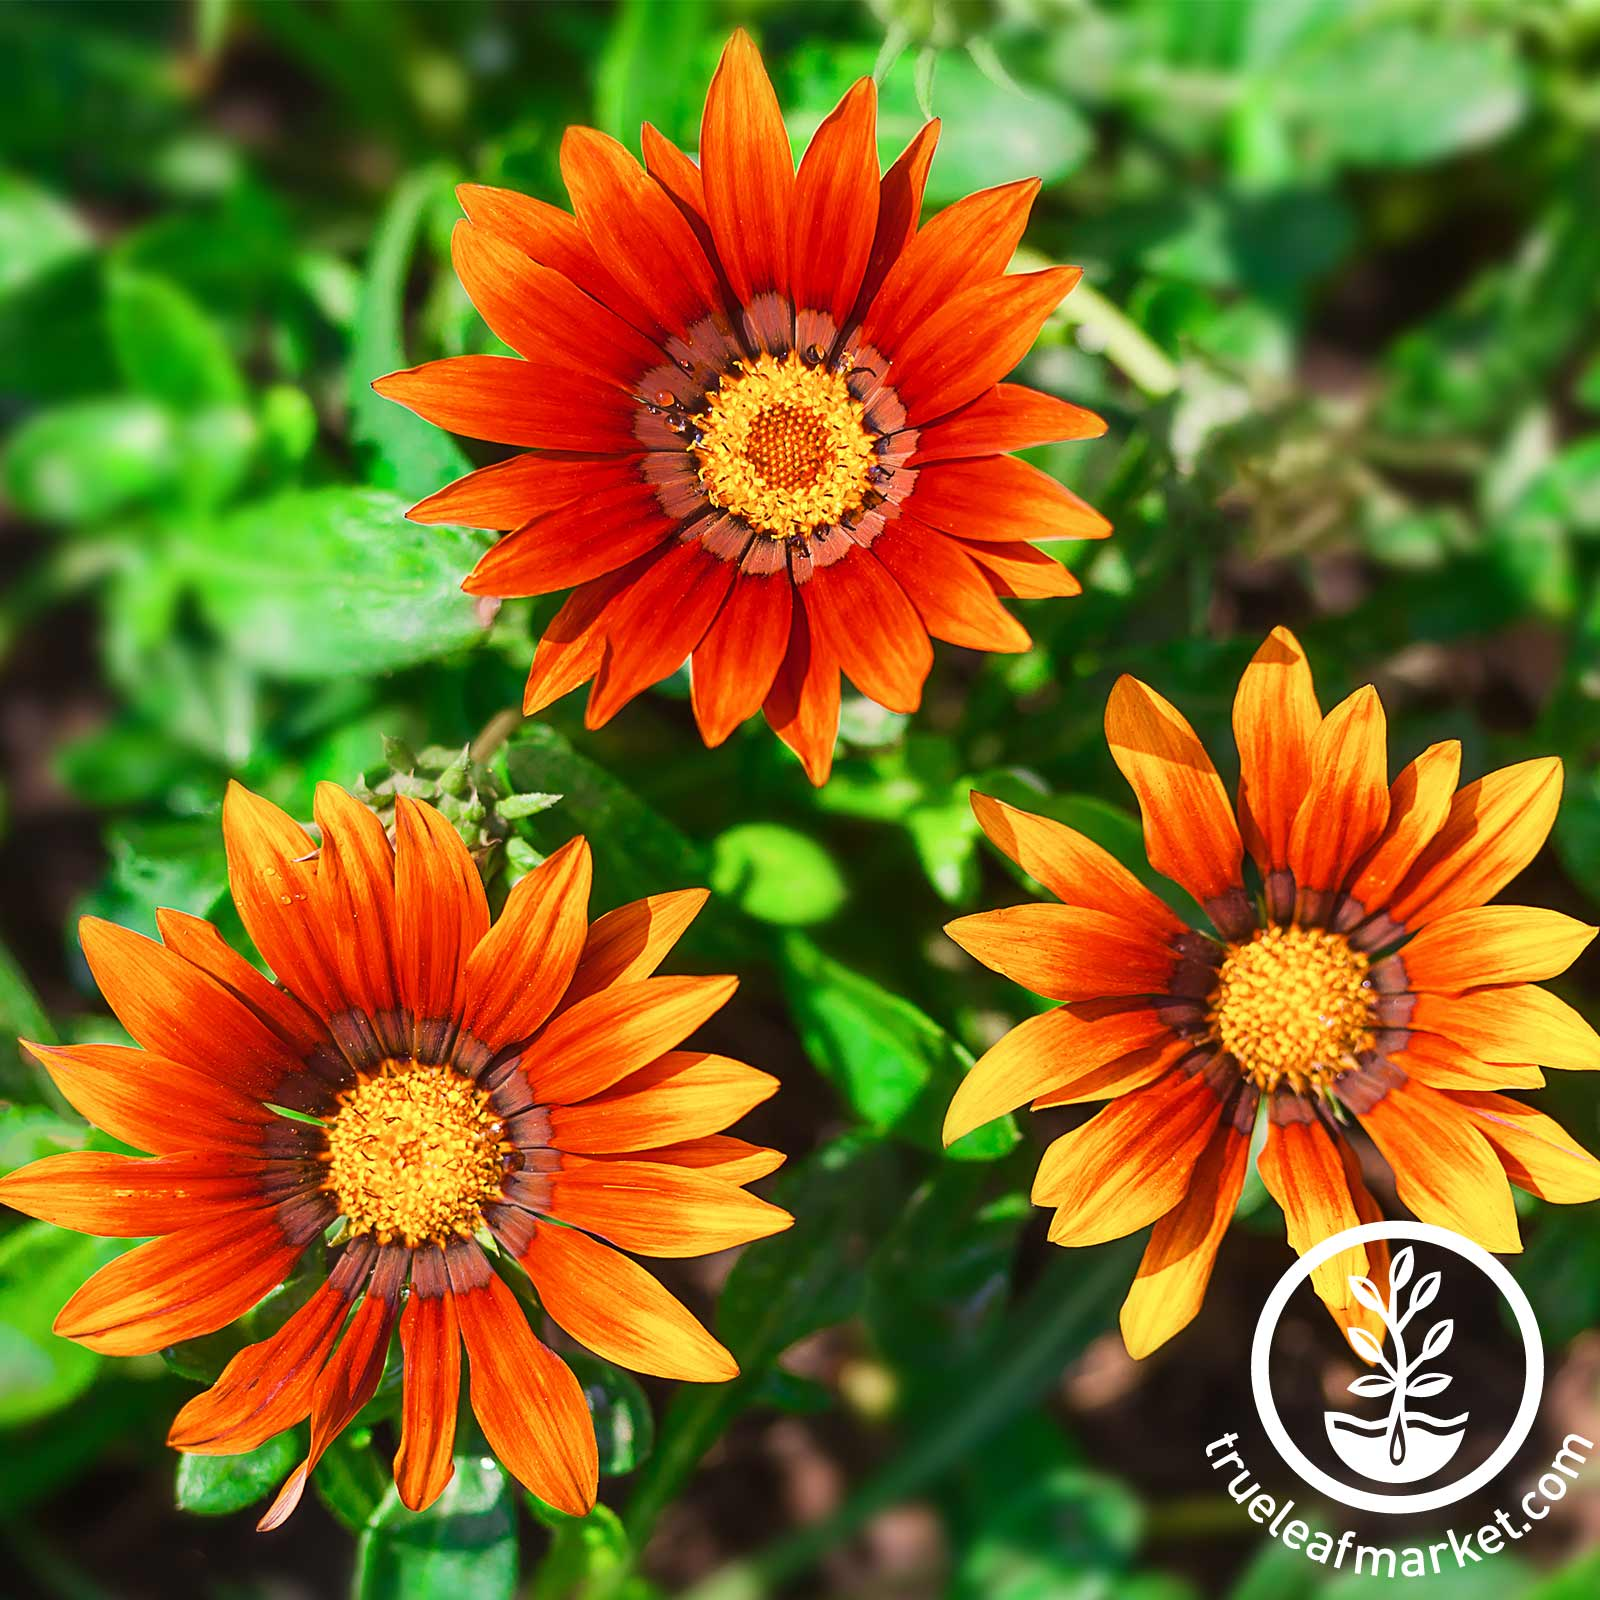 Gazania New Day Series Bronze Shades Seed